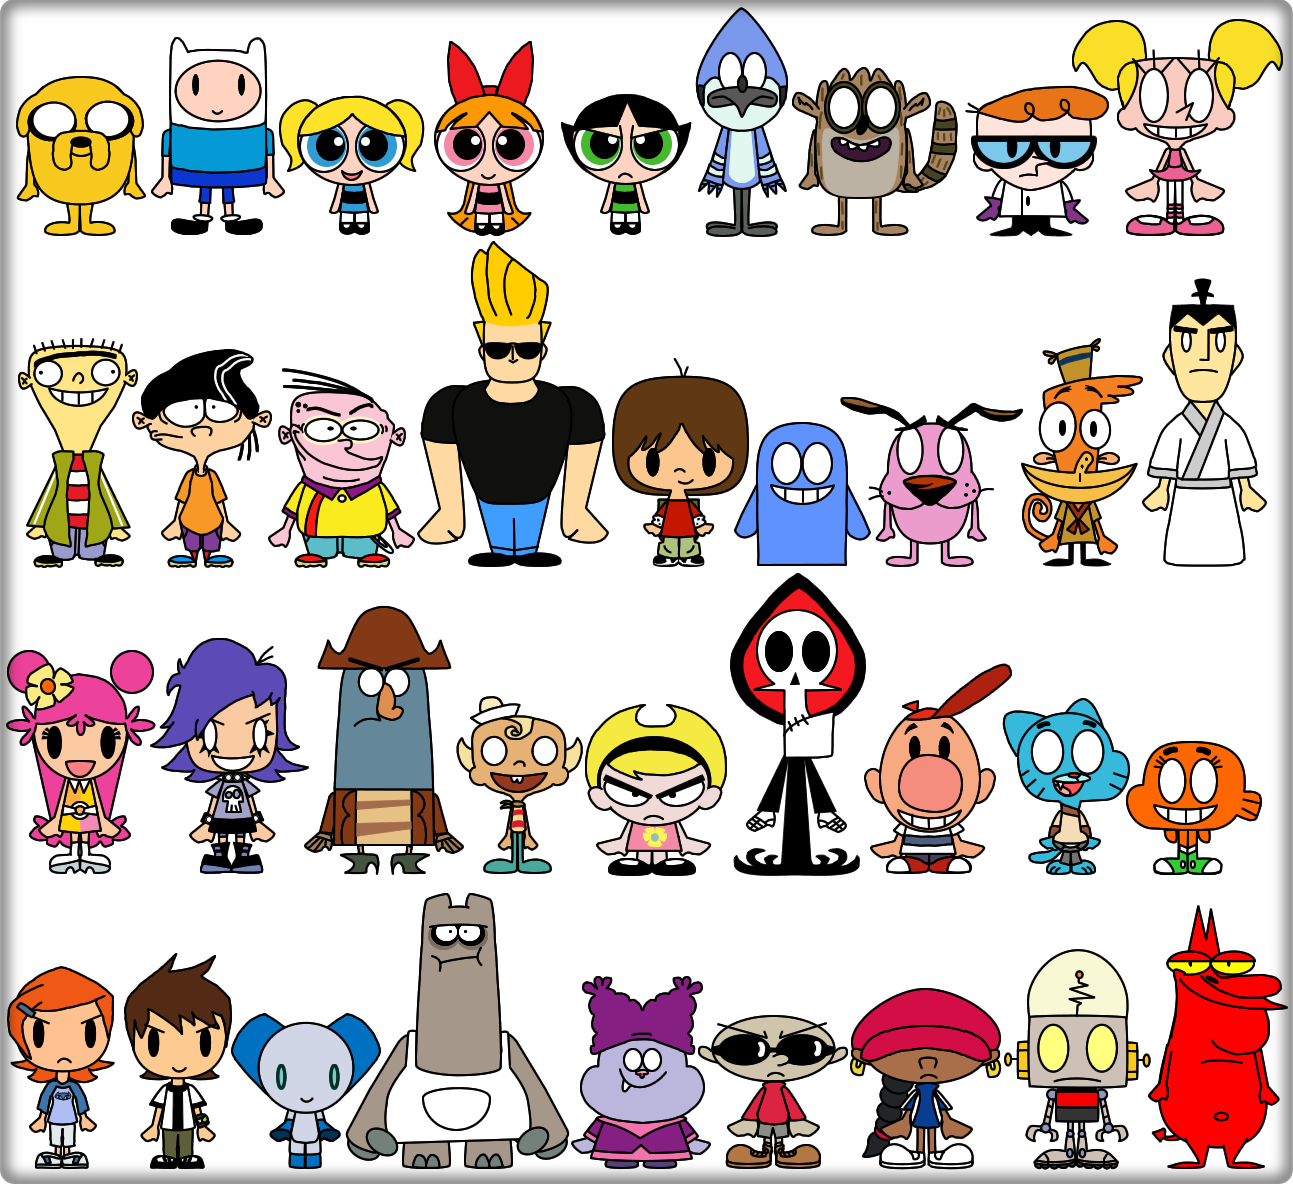 Cartoon Coloring Pages Printable Coloring Pages Images Cartoon Network Characters Old Cartoon Network Old Cartoons